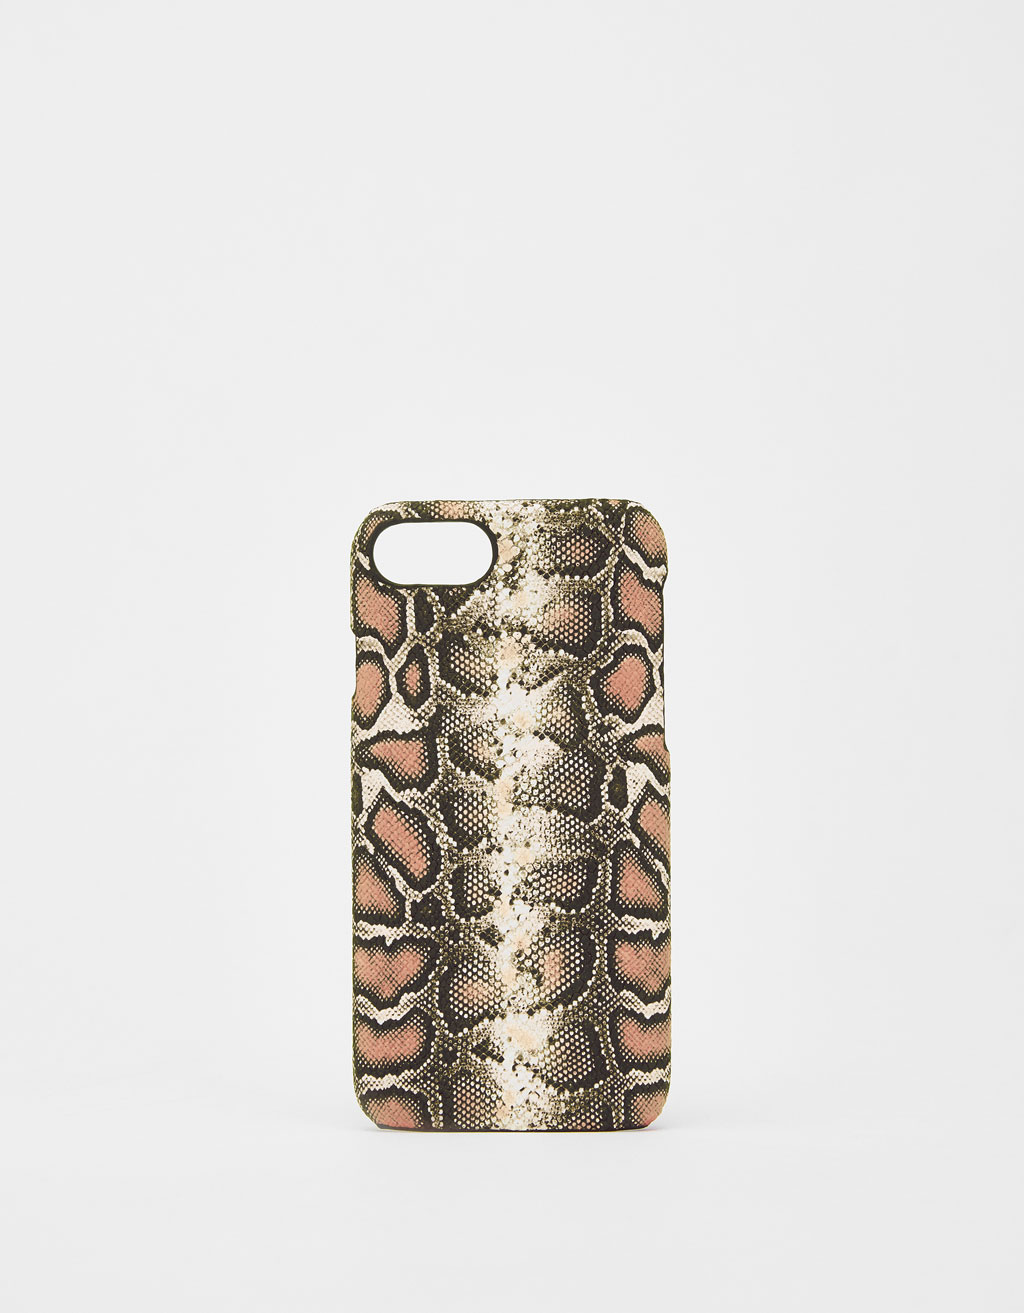 Carcasa de serpiente iPhone 6 /6s/7/8